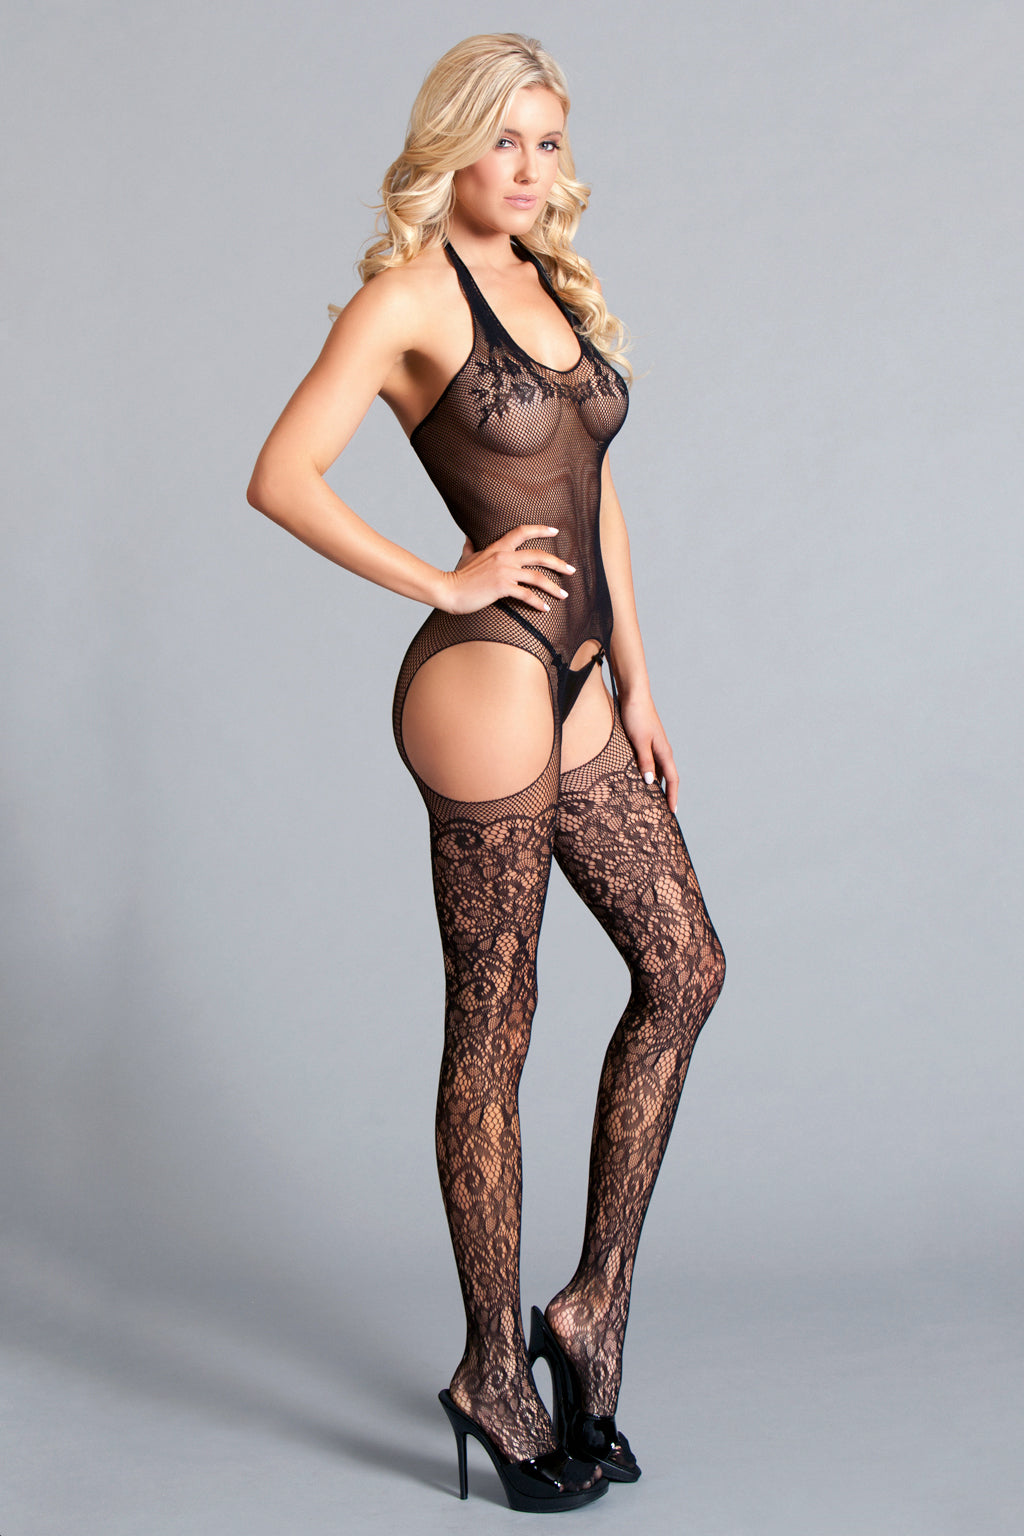 Ceres Bodystockings Lingerie- La La Trends